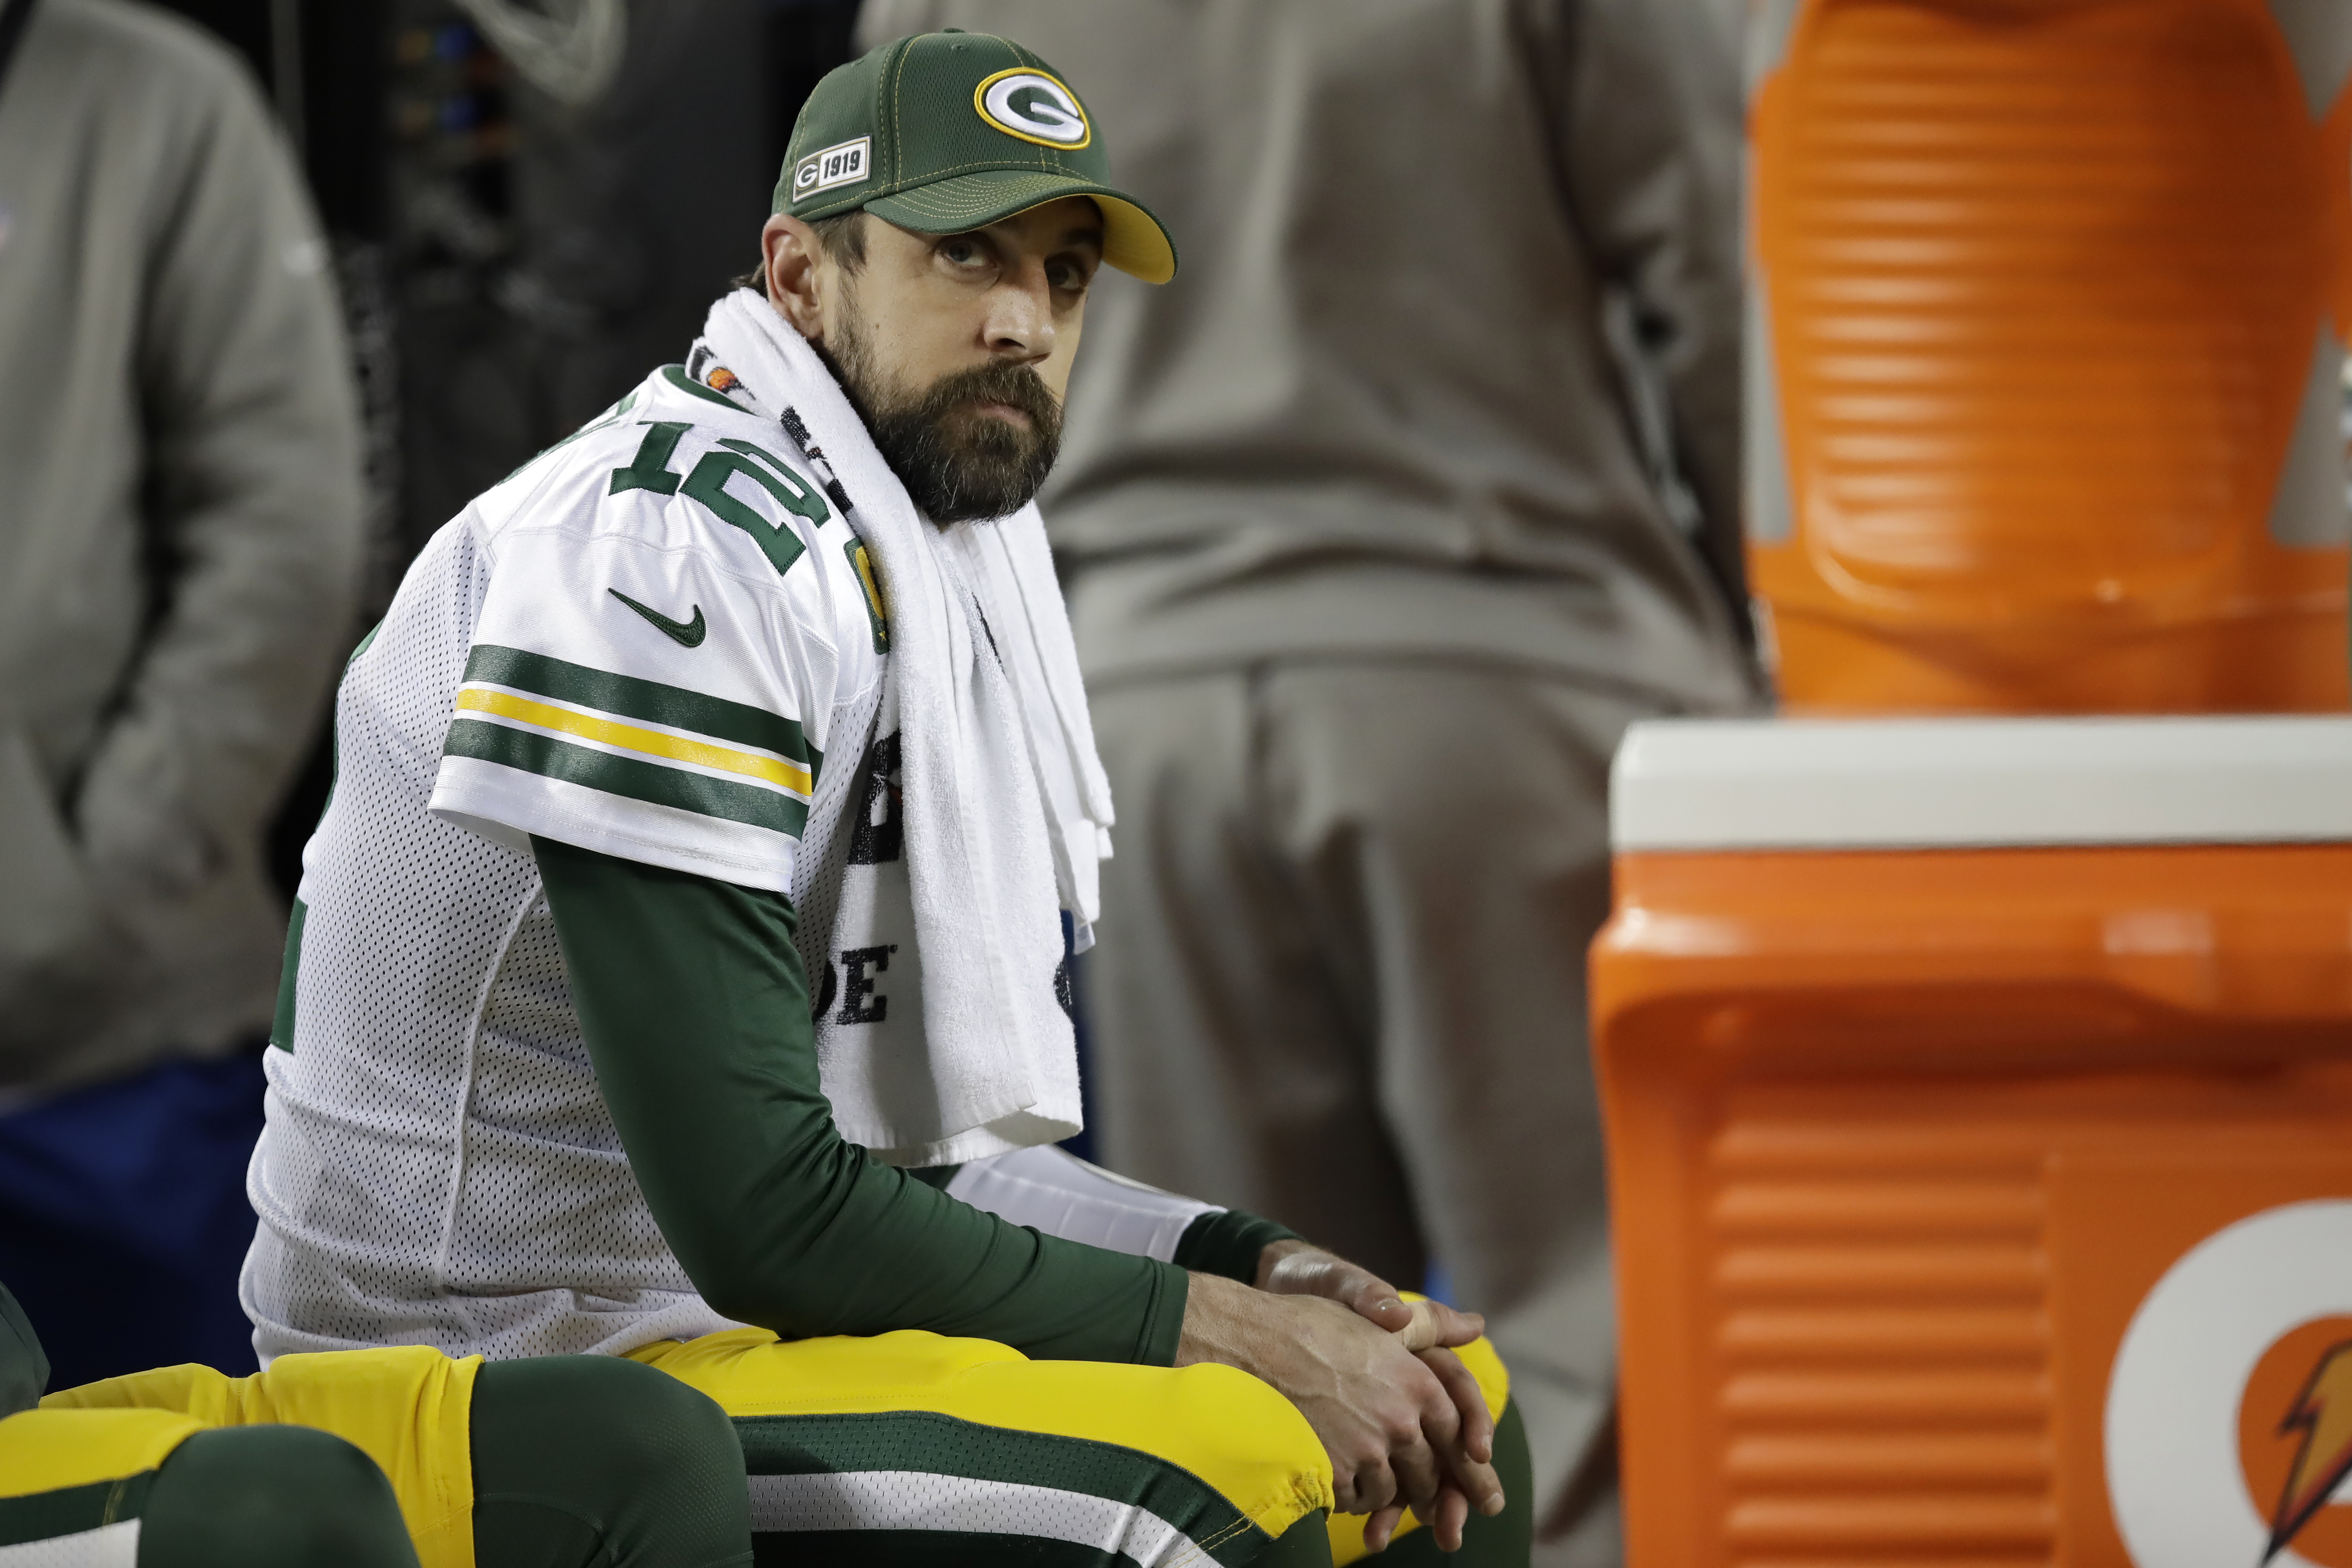 Aaron Rodgers hopes to make it back to the playoffs after losing in the NFC championship game last season. (AP Photo/Ben Margot)